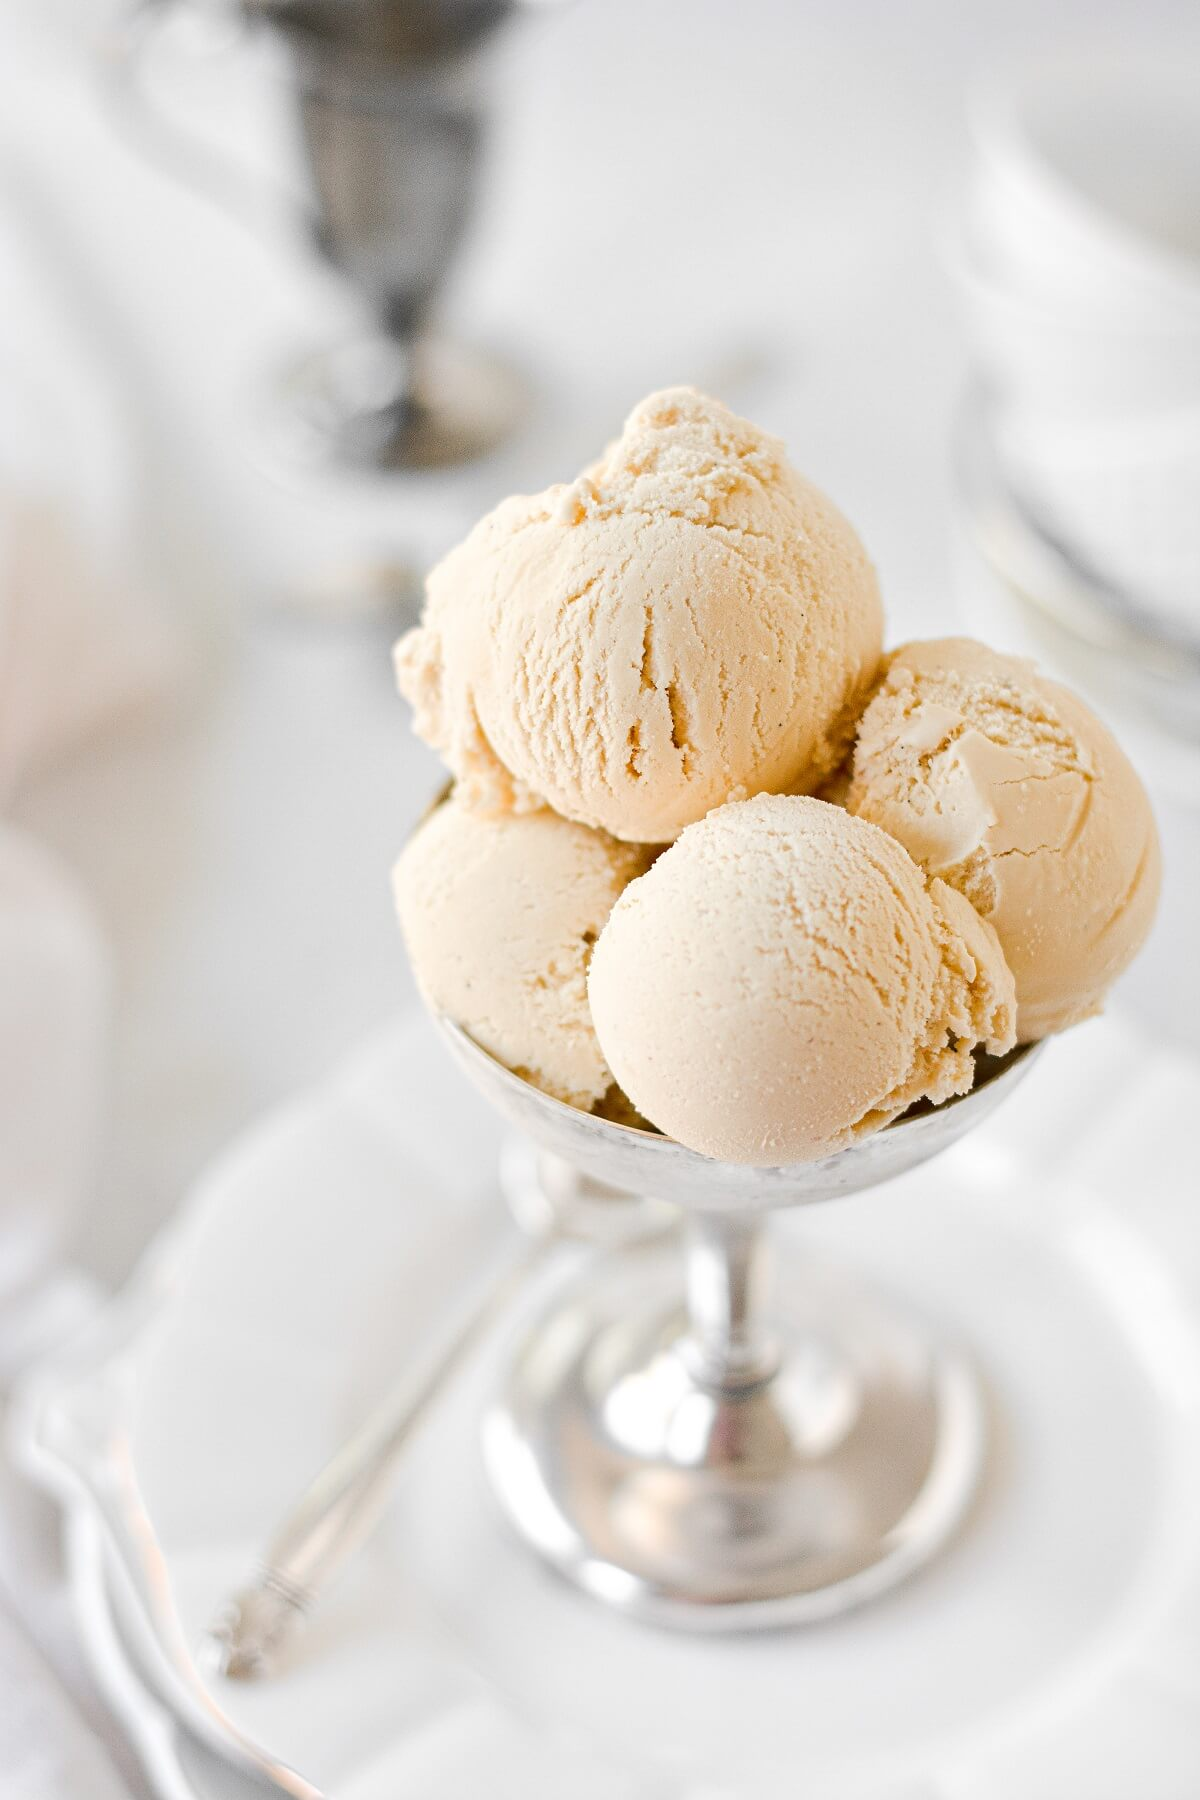 Scoops of brown sugar ice cream in a silver footed bowl.